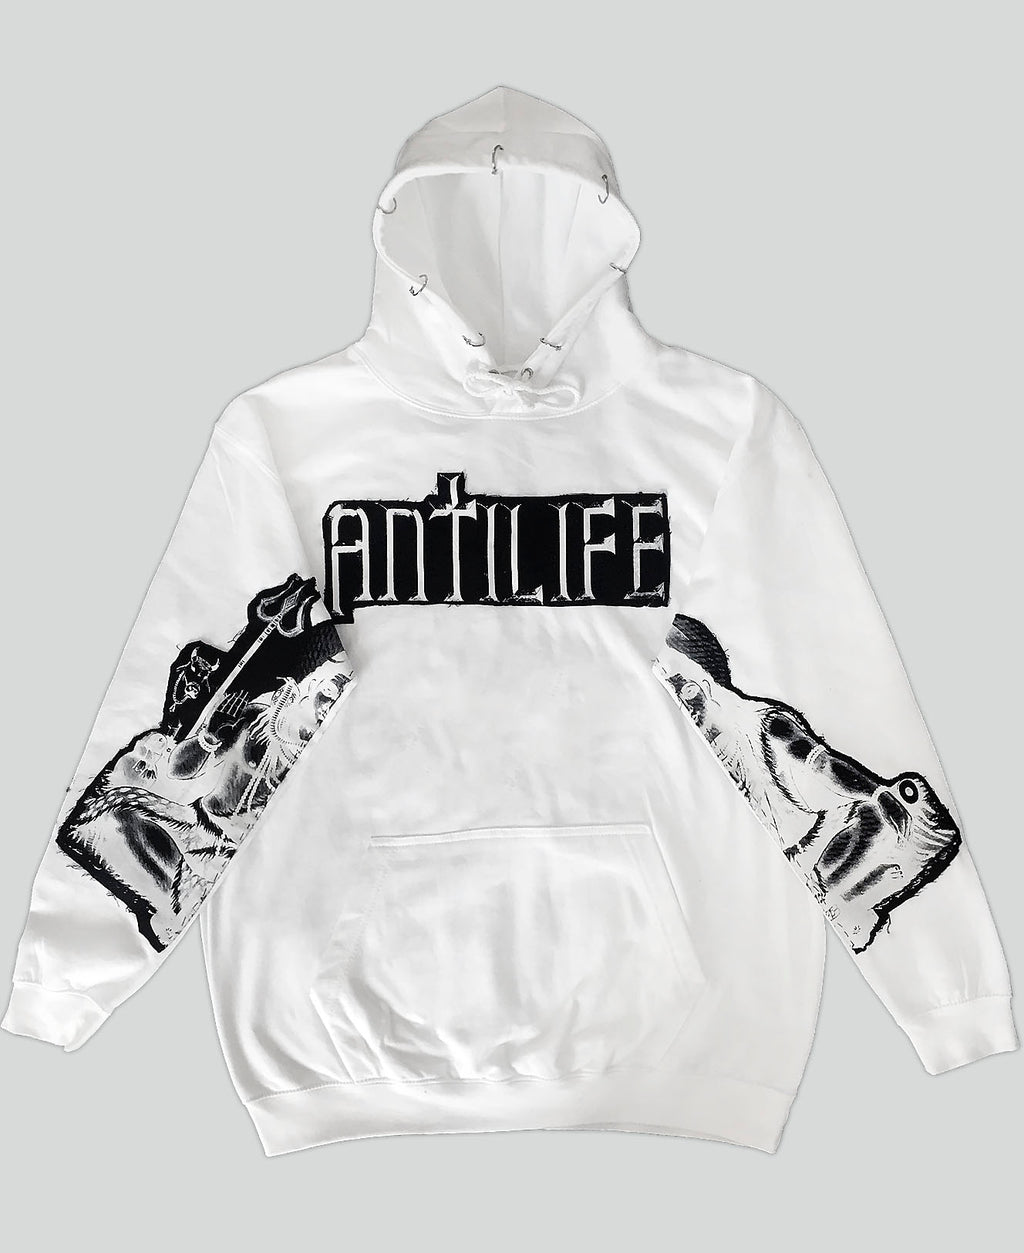 Body Of Death Hoodie - The Anti Life Ltd